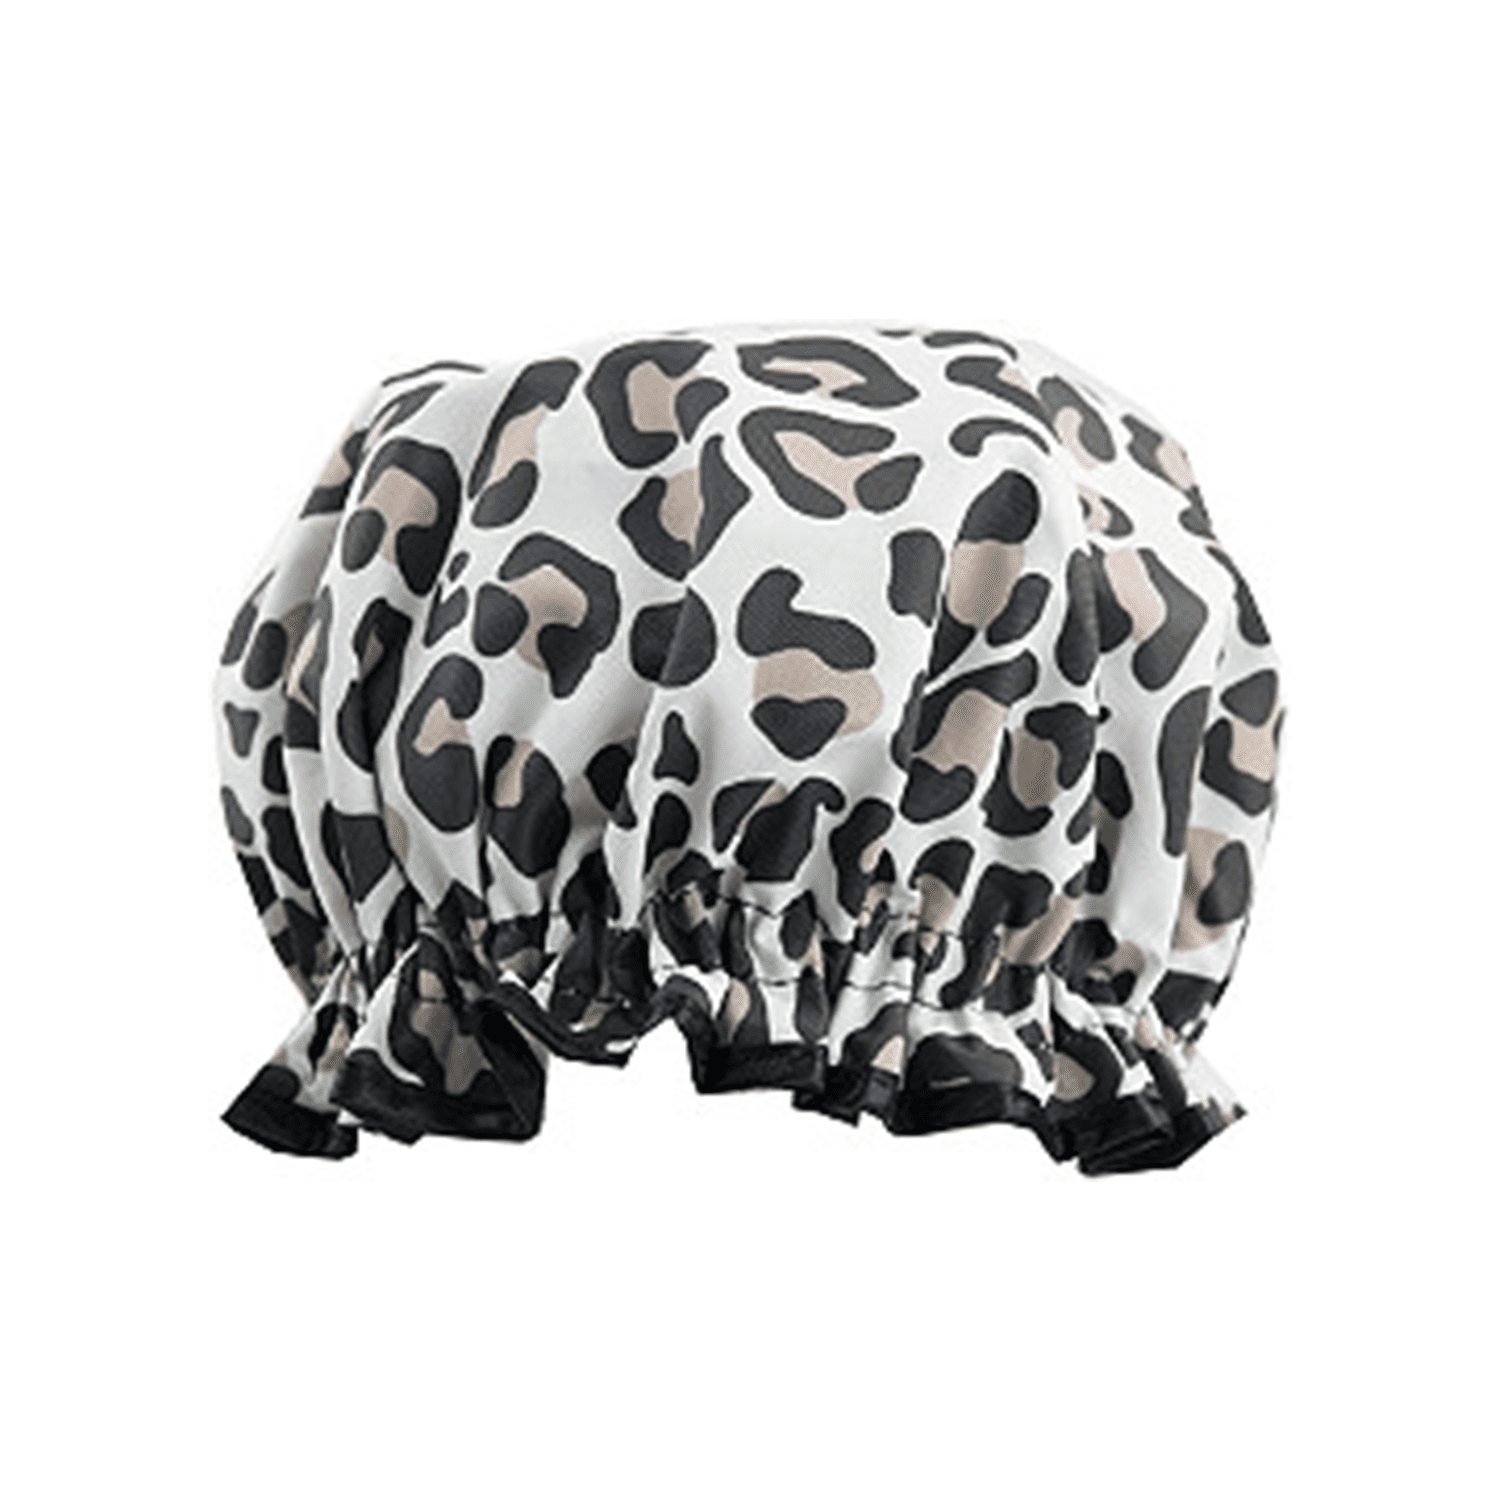 Best For Hair Treatments: The Vintage Cosmetic Company Leopard Print Shower Cap